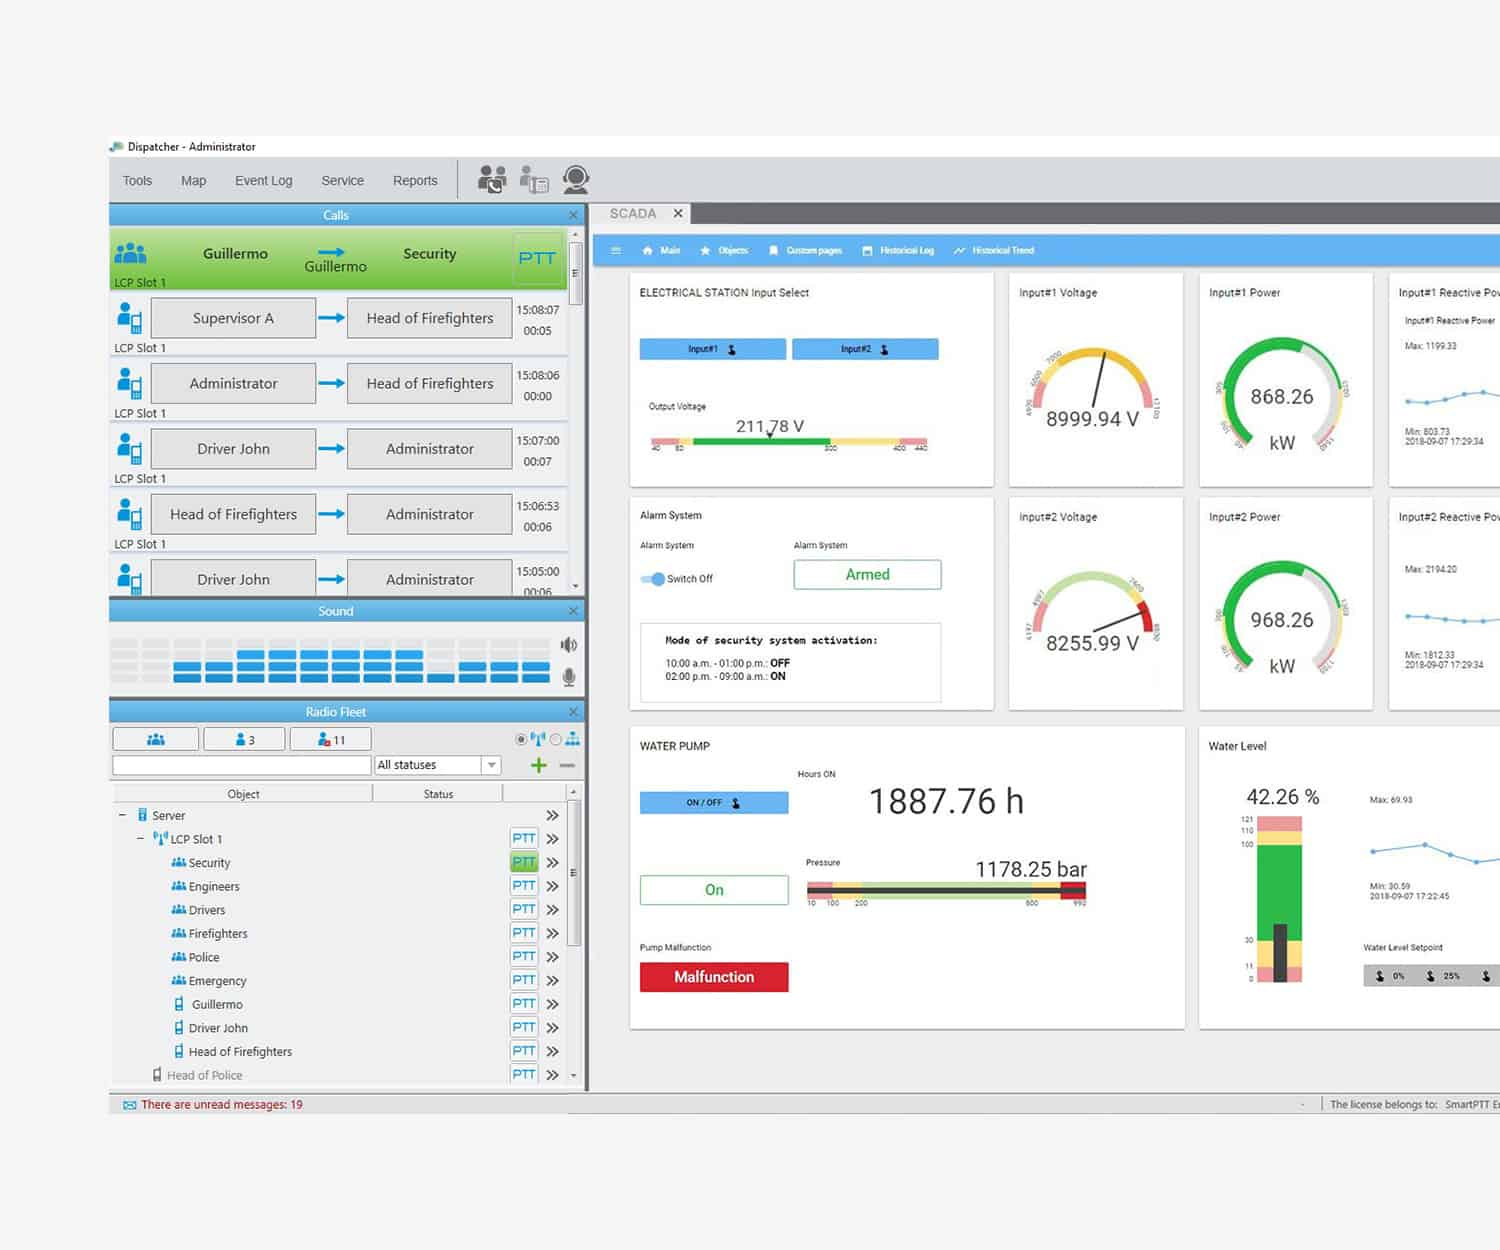 ScottishPower Renewables Unifies Wide Spread Workforce with a MOTOTRBO and SmartPTT SCADA Screen Shotewables Unifies Wide Spread Workforce with a MOTOTRBO and SmartPTT SCADA Screen Shot